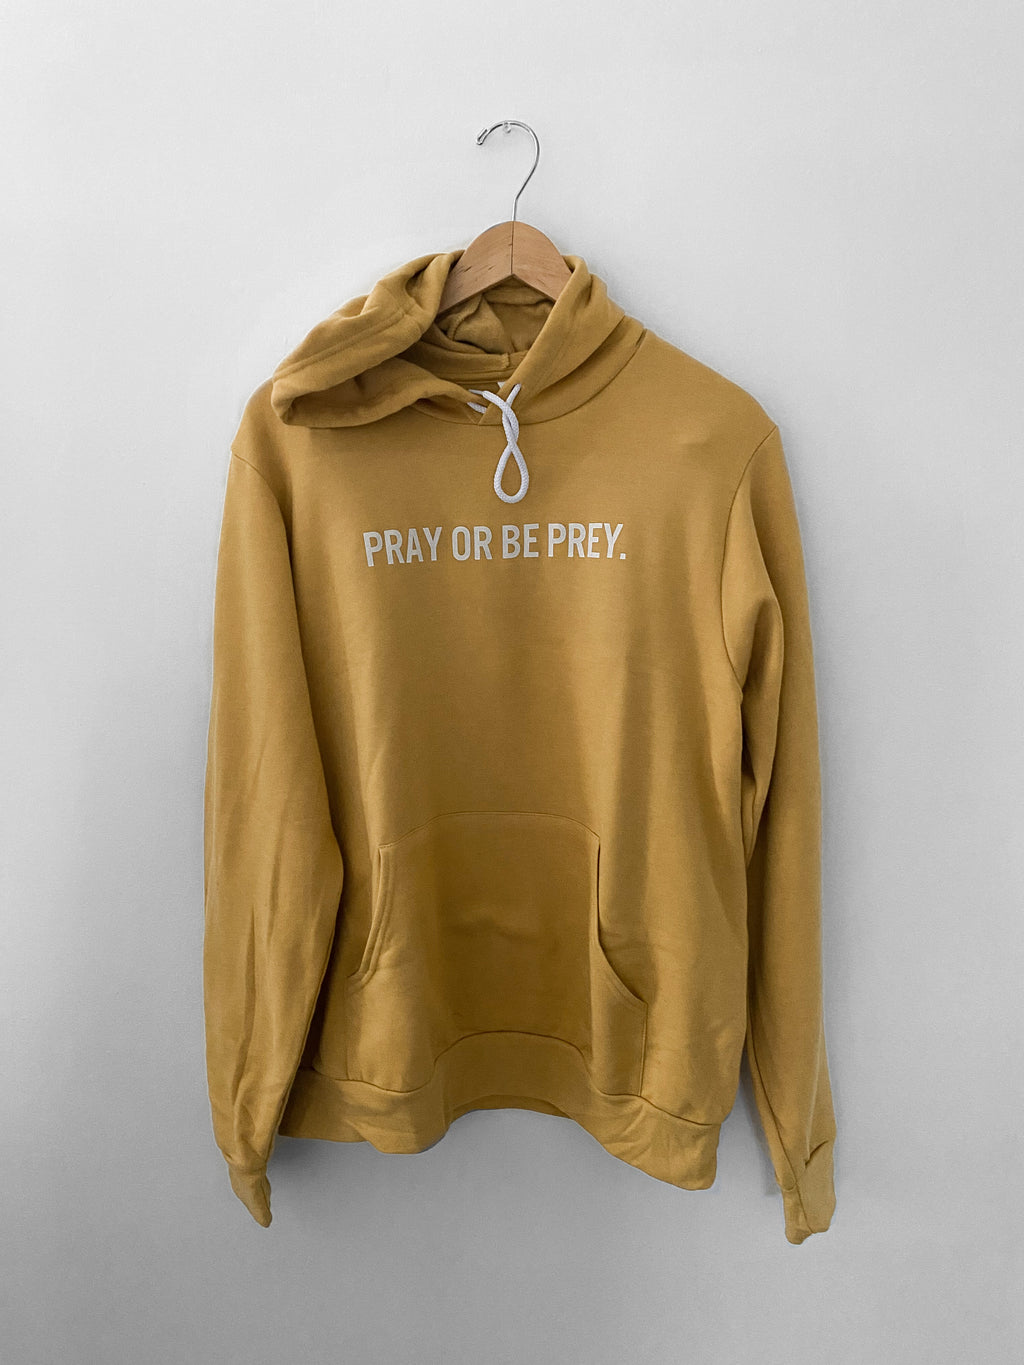 Pray or Be Prey Hoodie - Yellow